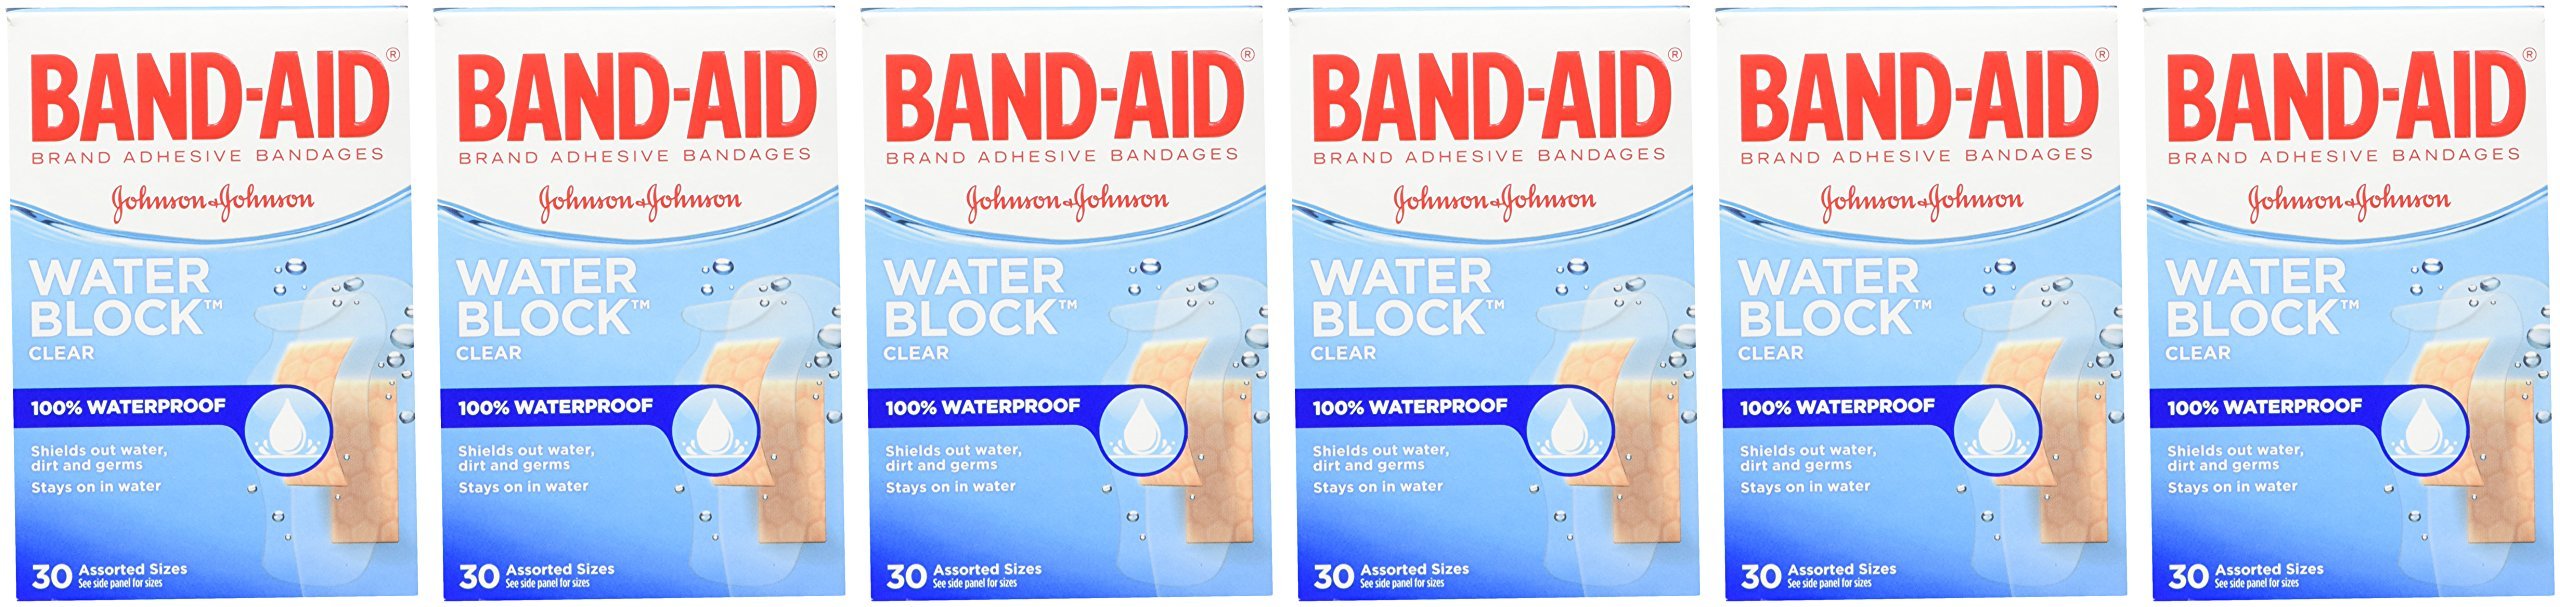 Band-Aid Brand Water Block Plus Waterproof Clear Adhesive Bandages for Minor Cuts and Scrapes, 30 ct (6 Pack) by Band-Aid (Image #3)